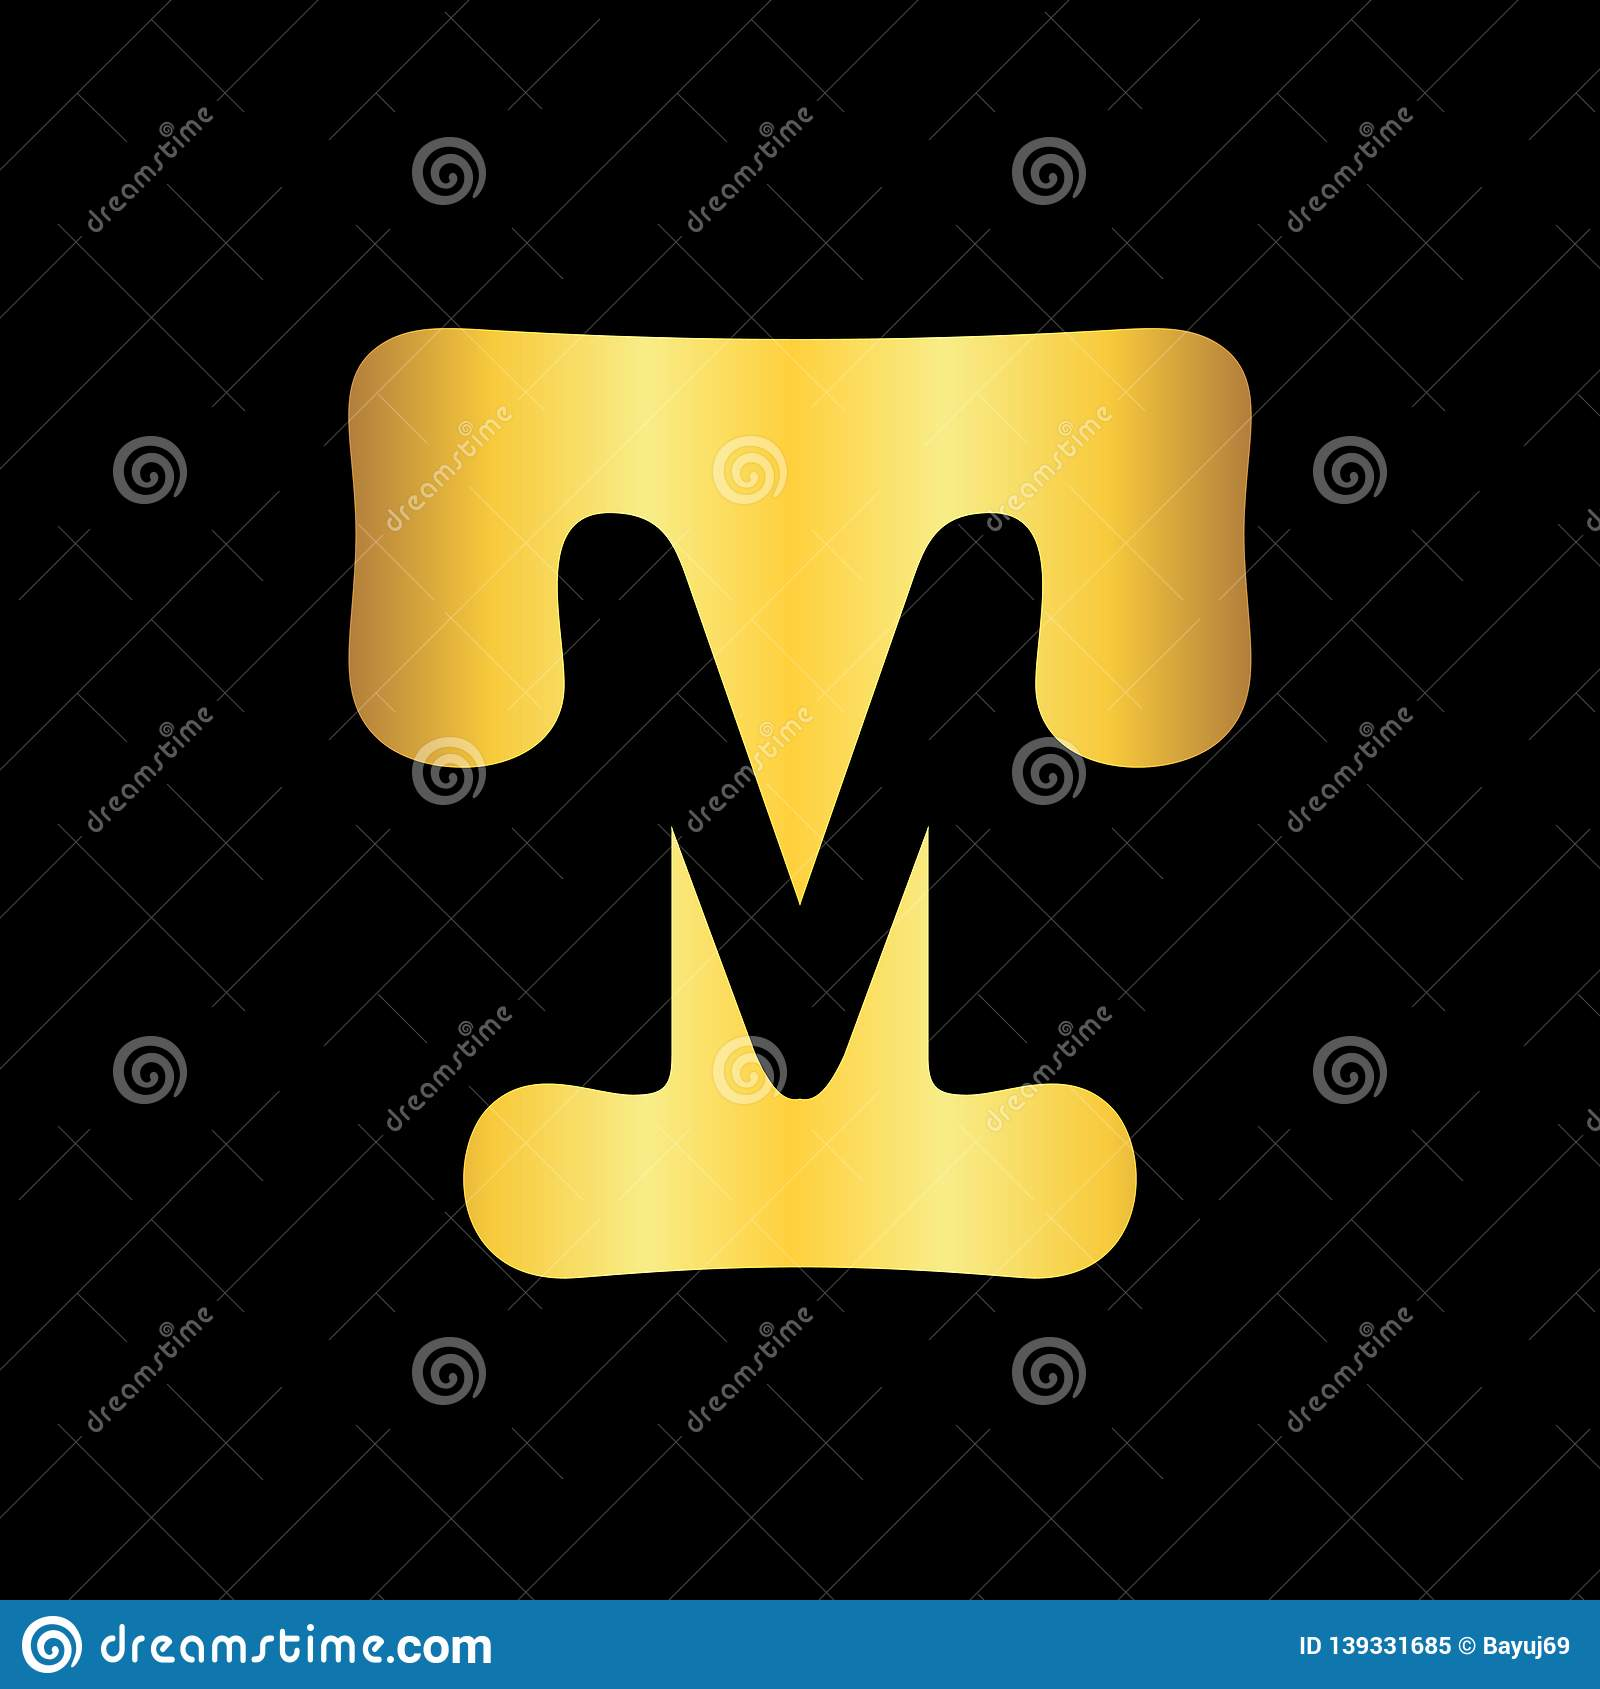 Initial TM Letter Logo Design Template Stock Vector